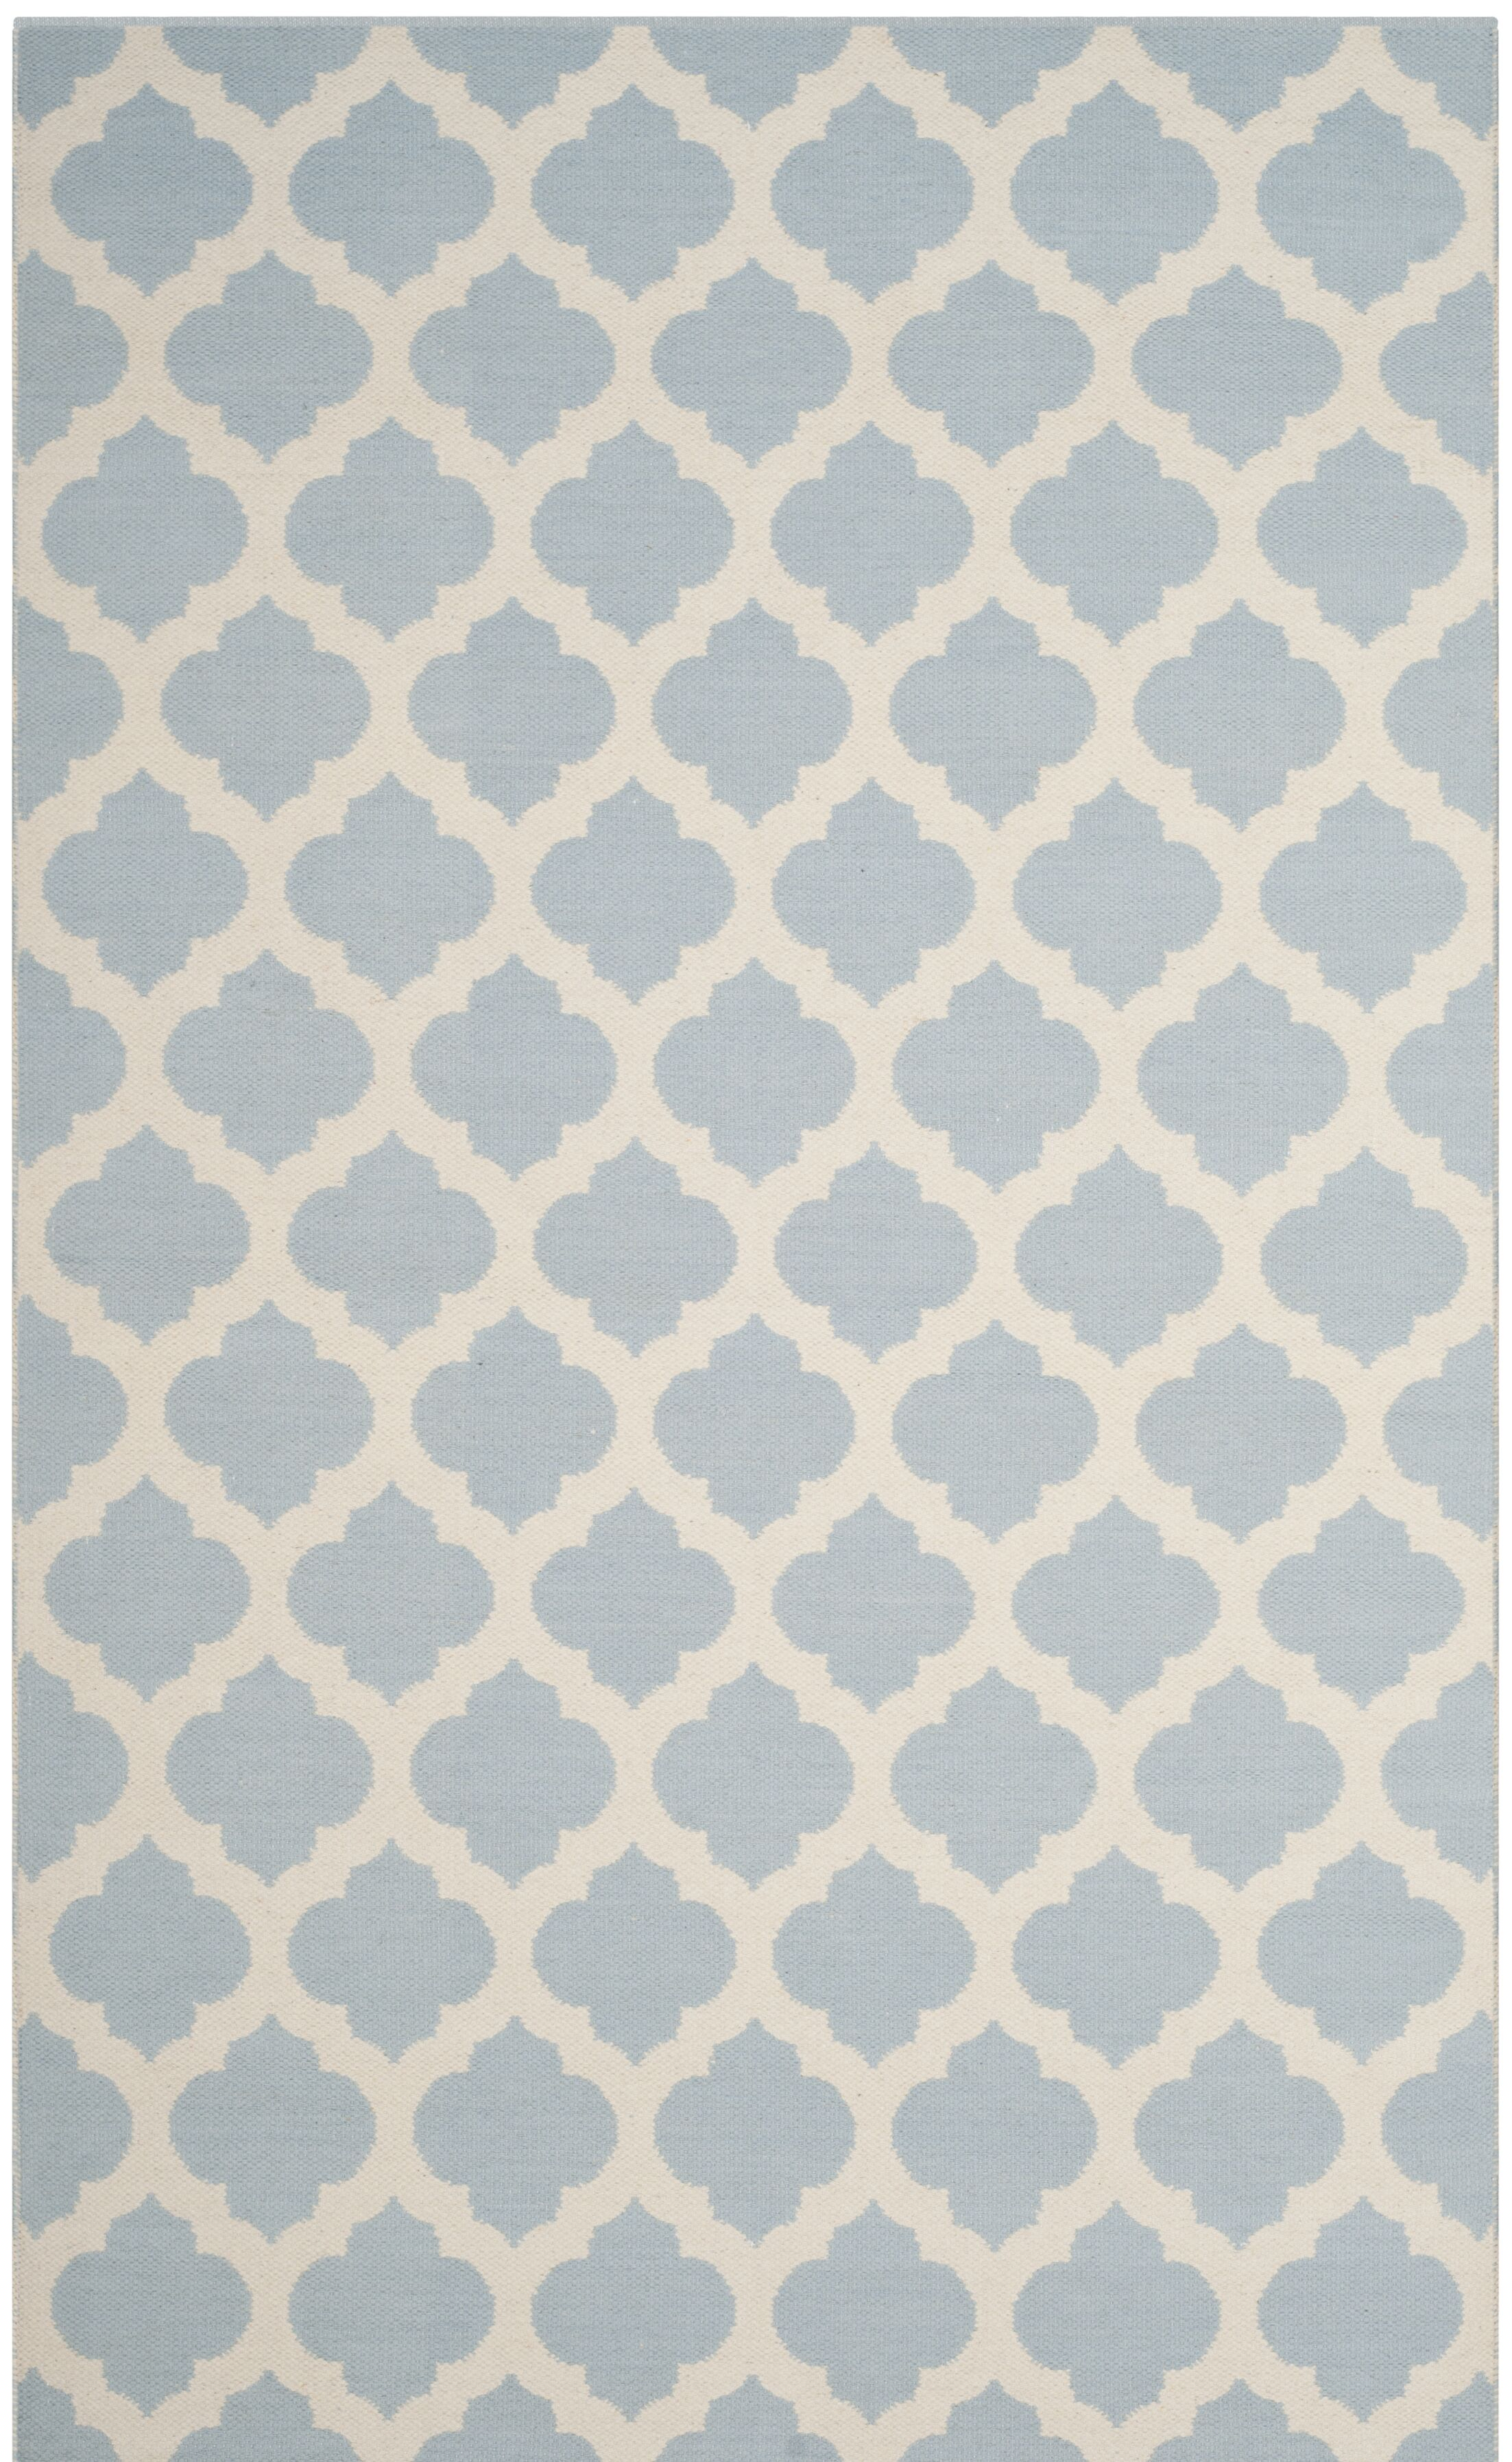 Willow Hand-Woven Light Blue/Ivory Area Rug Rug Size: Square 6'